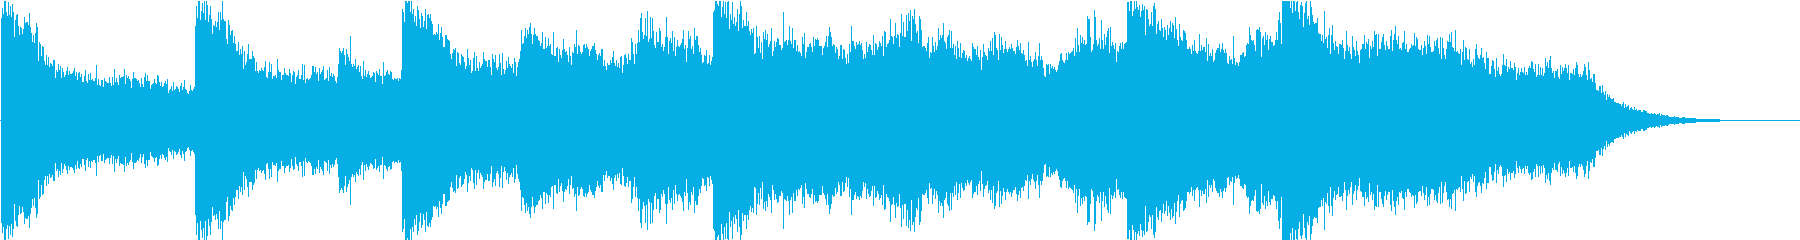 Hollywood movie style BGM (OP · appearance)'s reproduced waveform